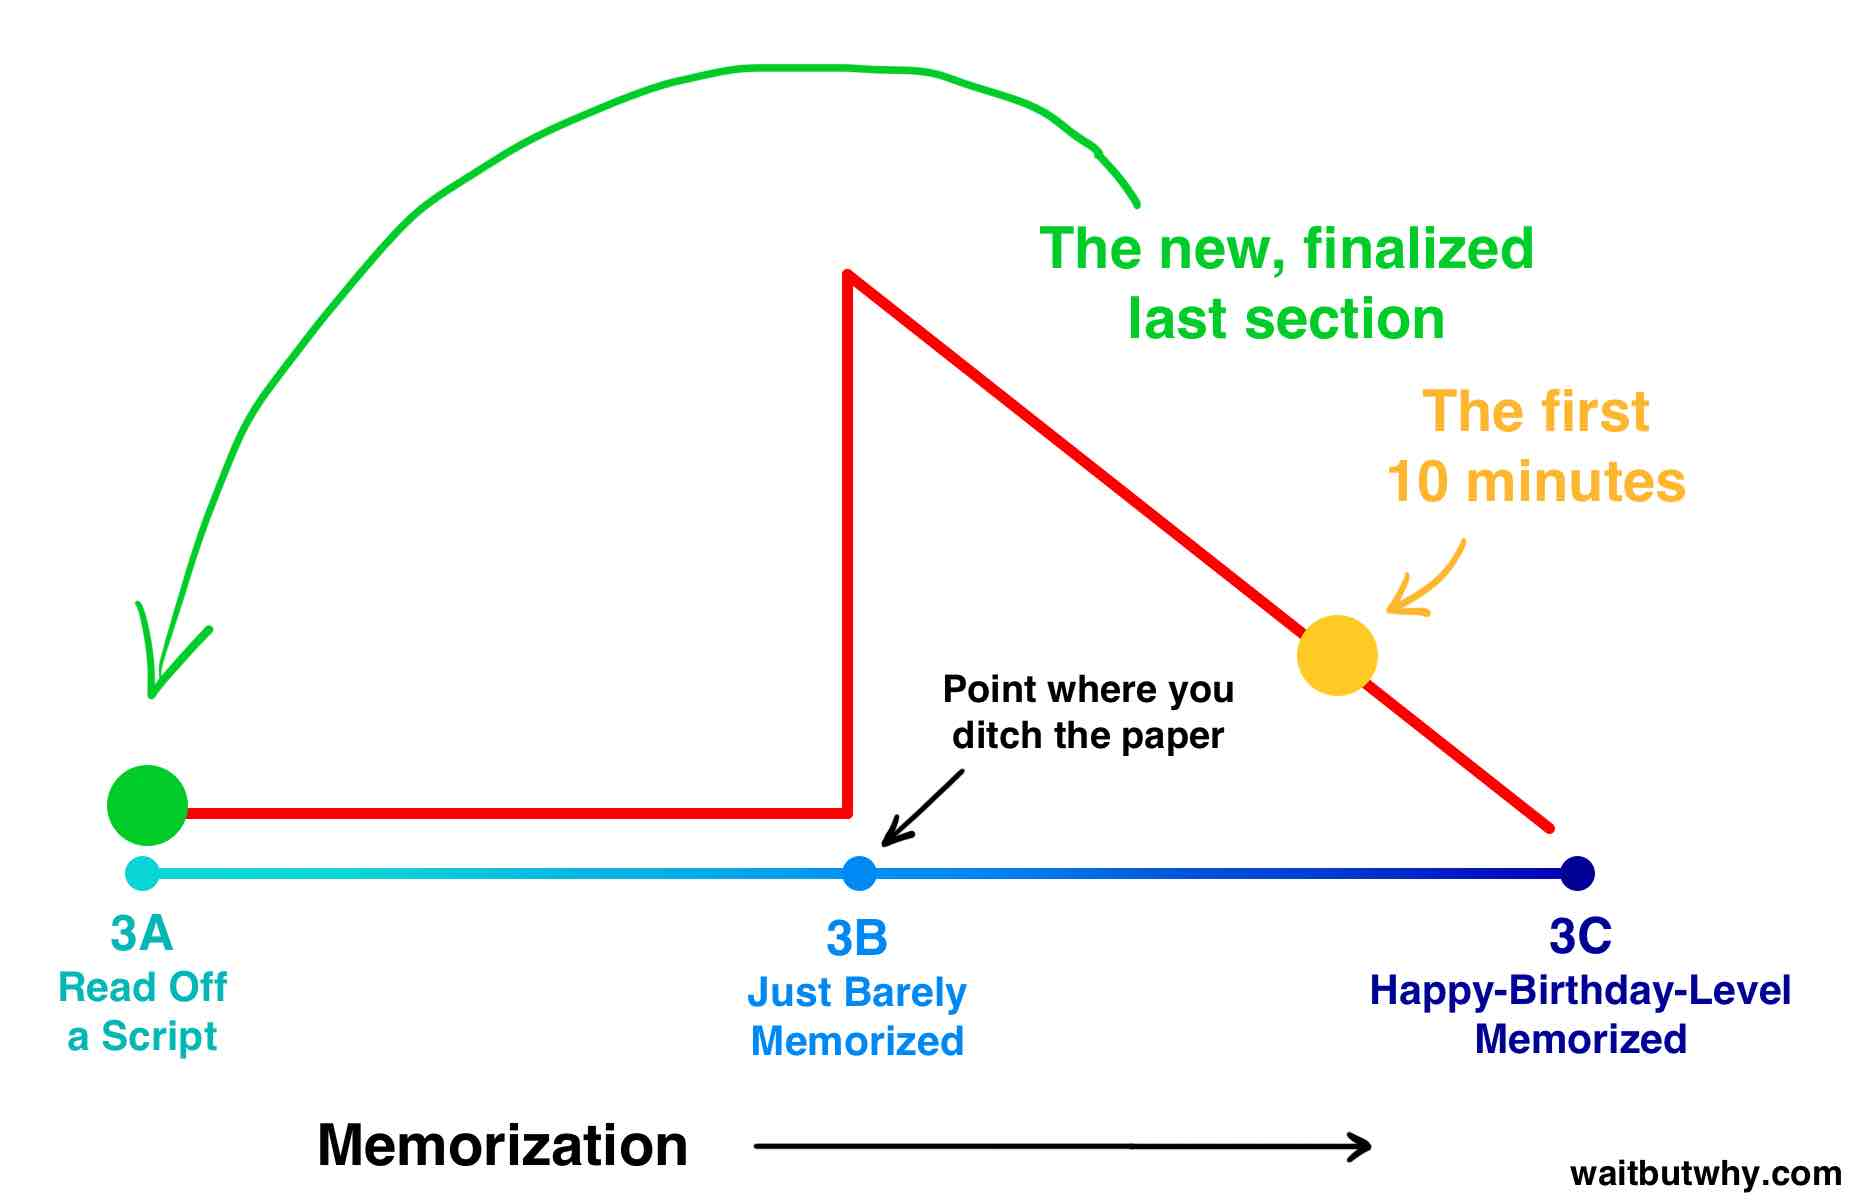 memorization spectrum with the first ten minutes almost happy-birthday but the new finalized last section still at read off a script